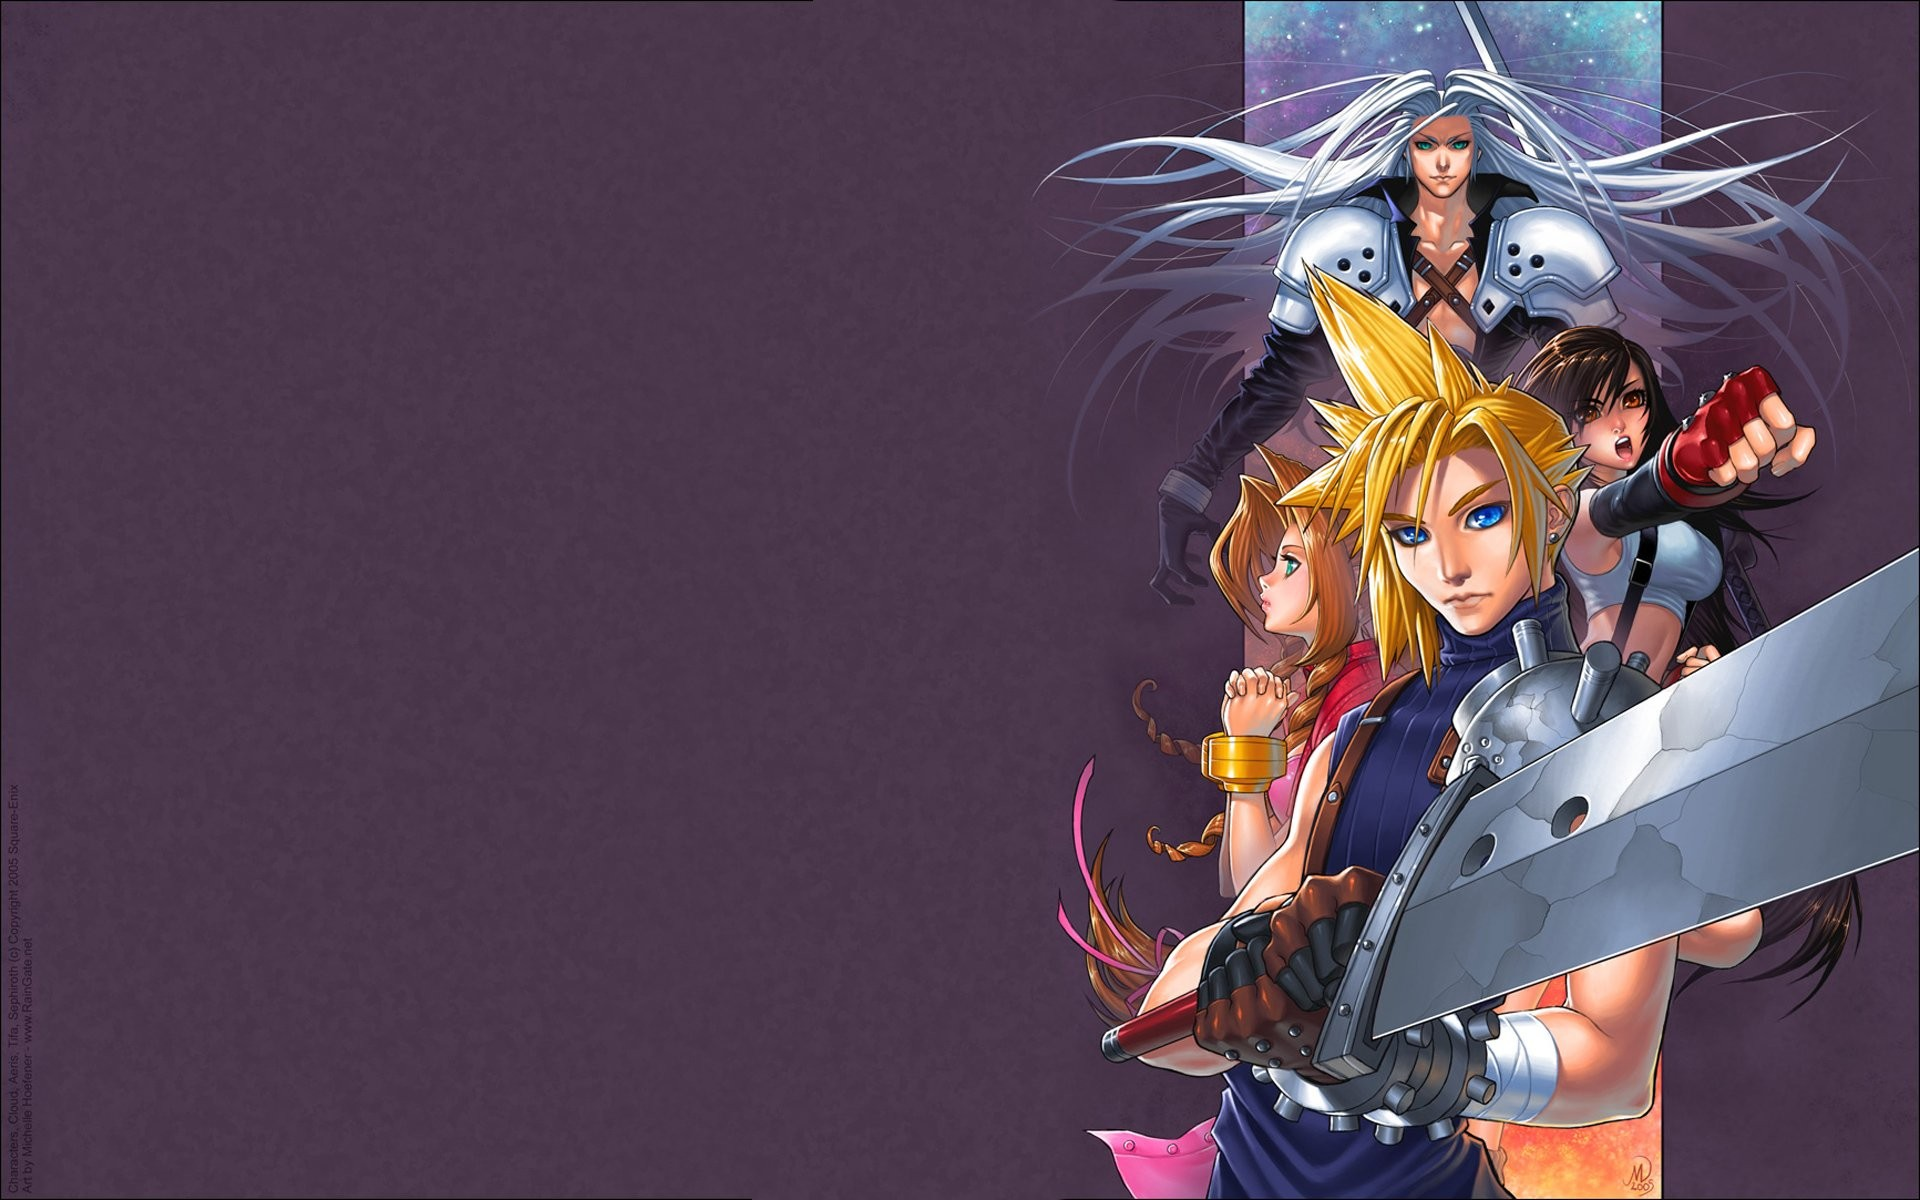 Final fantasy vii wallpaper download free awesome full - Fantasy wallpaper anime ...